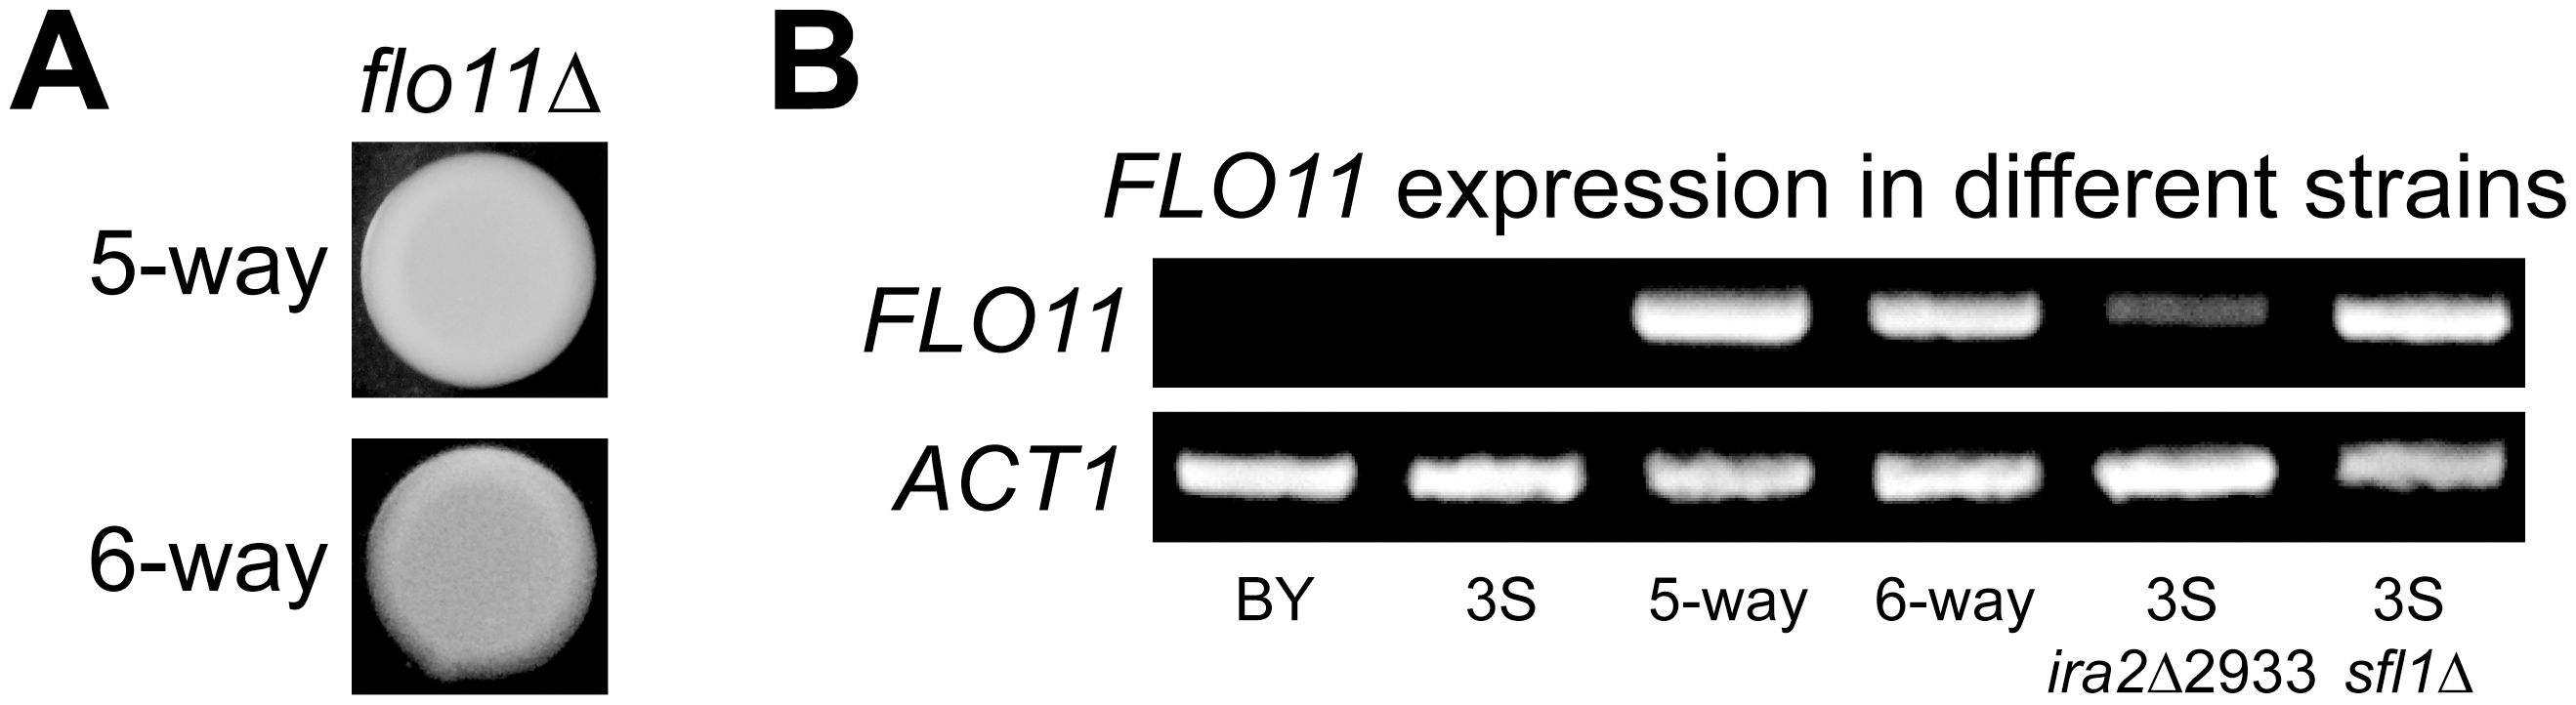 <i>FLO11</i> is required for rough morphology and shows differential expression across genetic backgrounds.